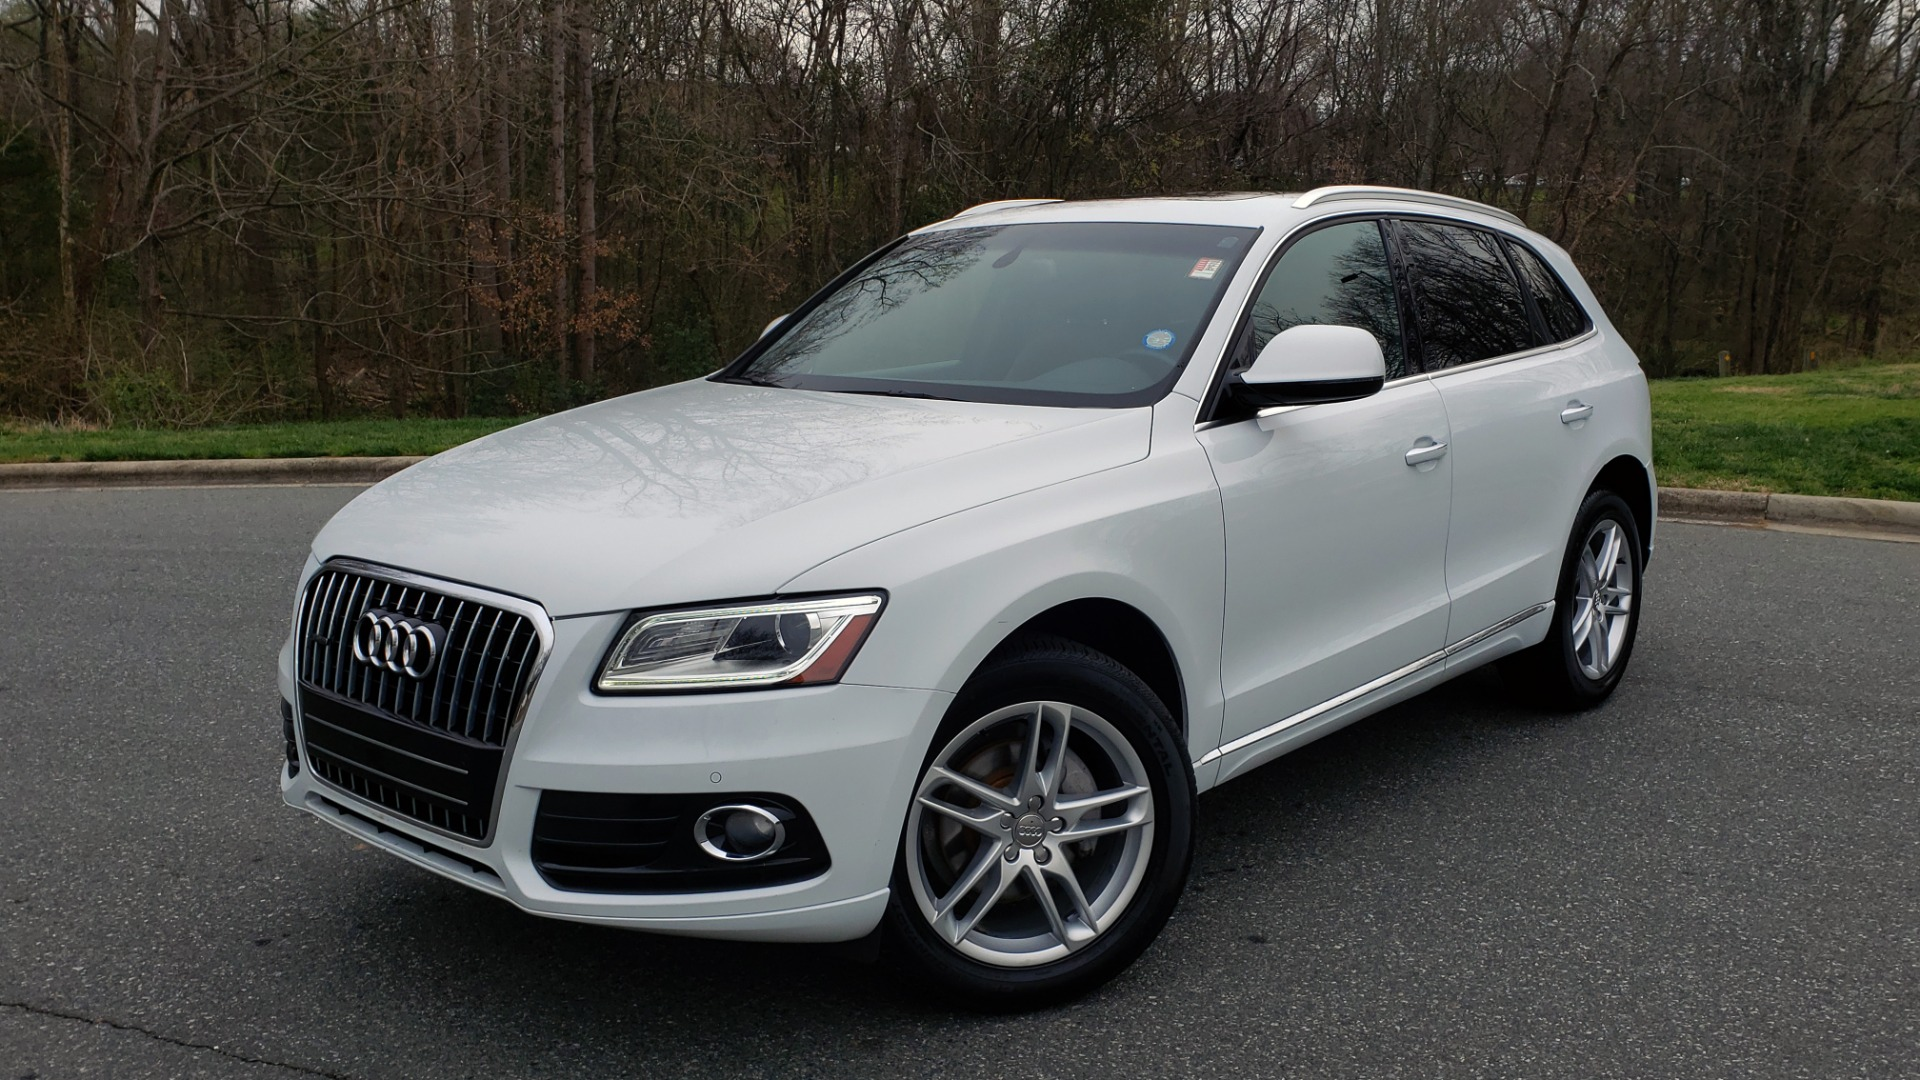 Used 2017 Audi Q5 PREMIUM PLUS / TECH / NAV / PANO-ROOF / B&O SND / REARVIEW for sale Sold at Formula Imports in Charlotte NC 28227 1